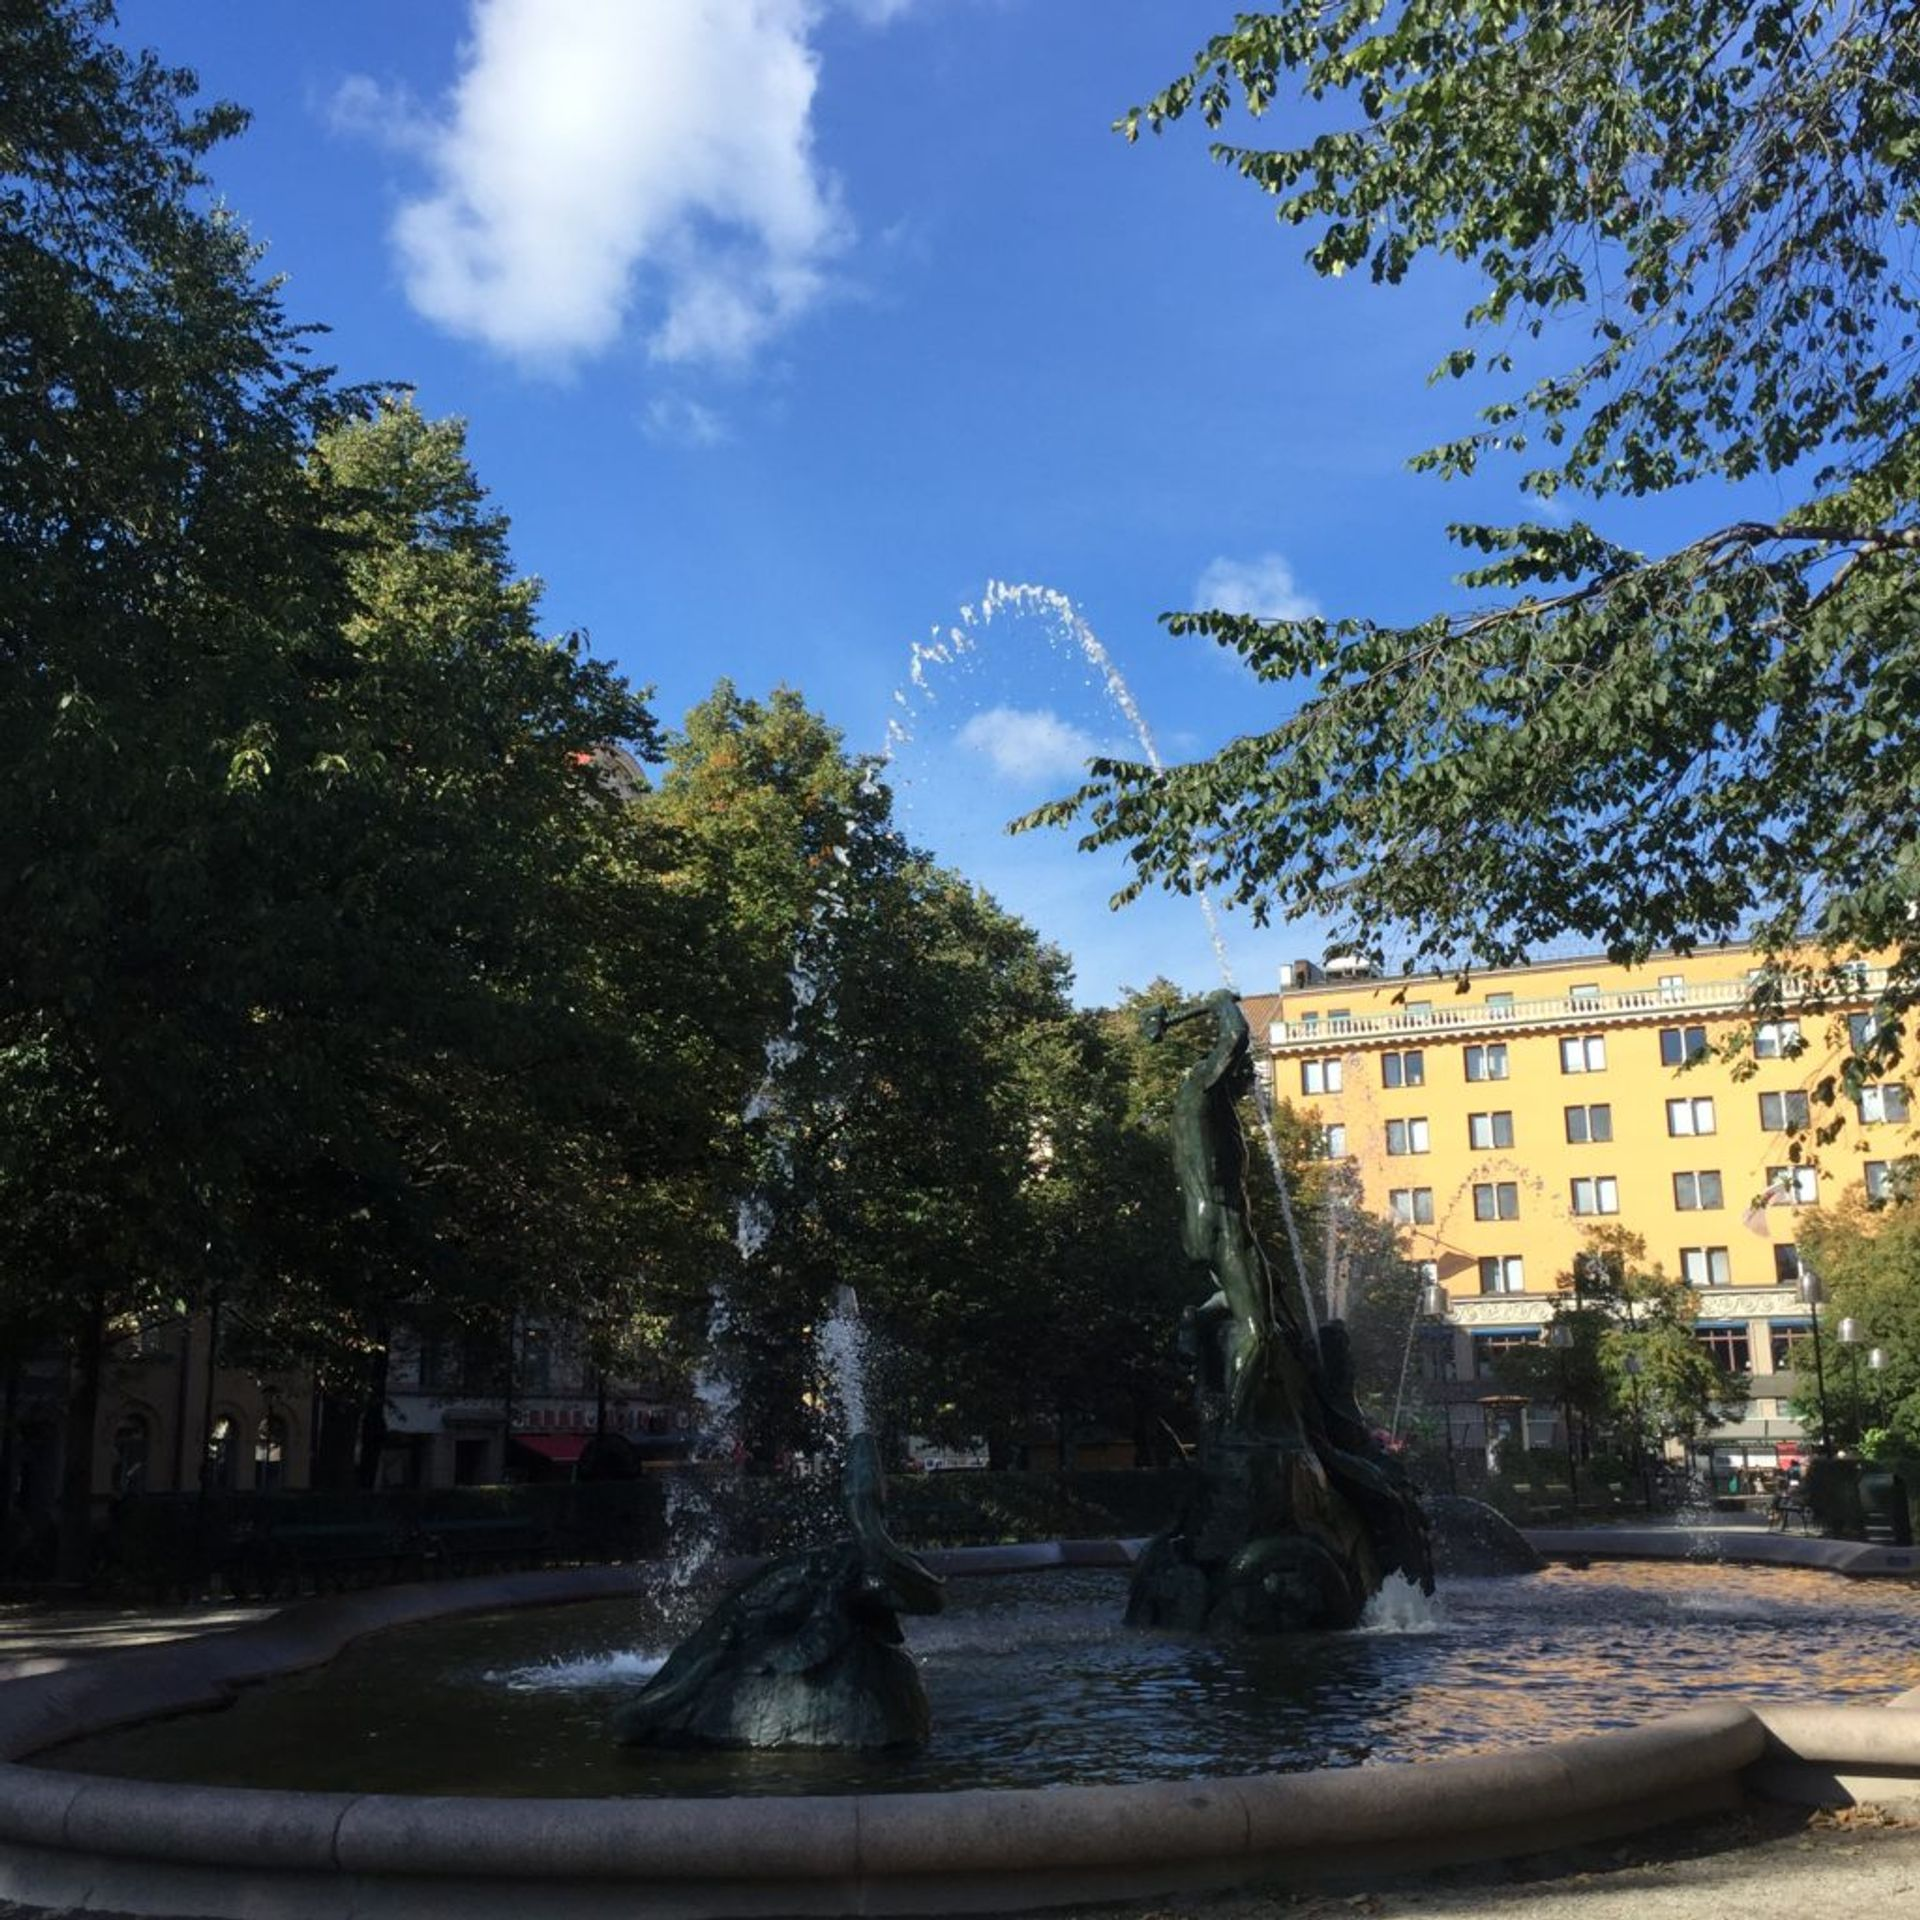 A large fountain in Stockholm.